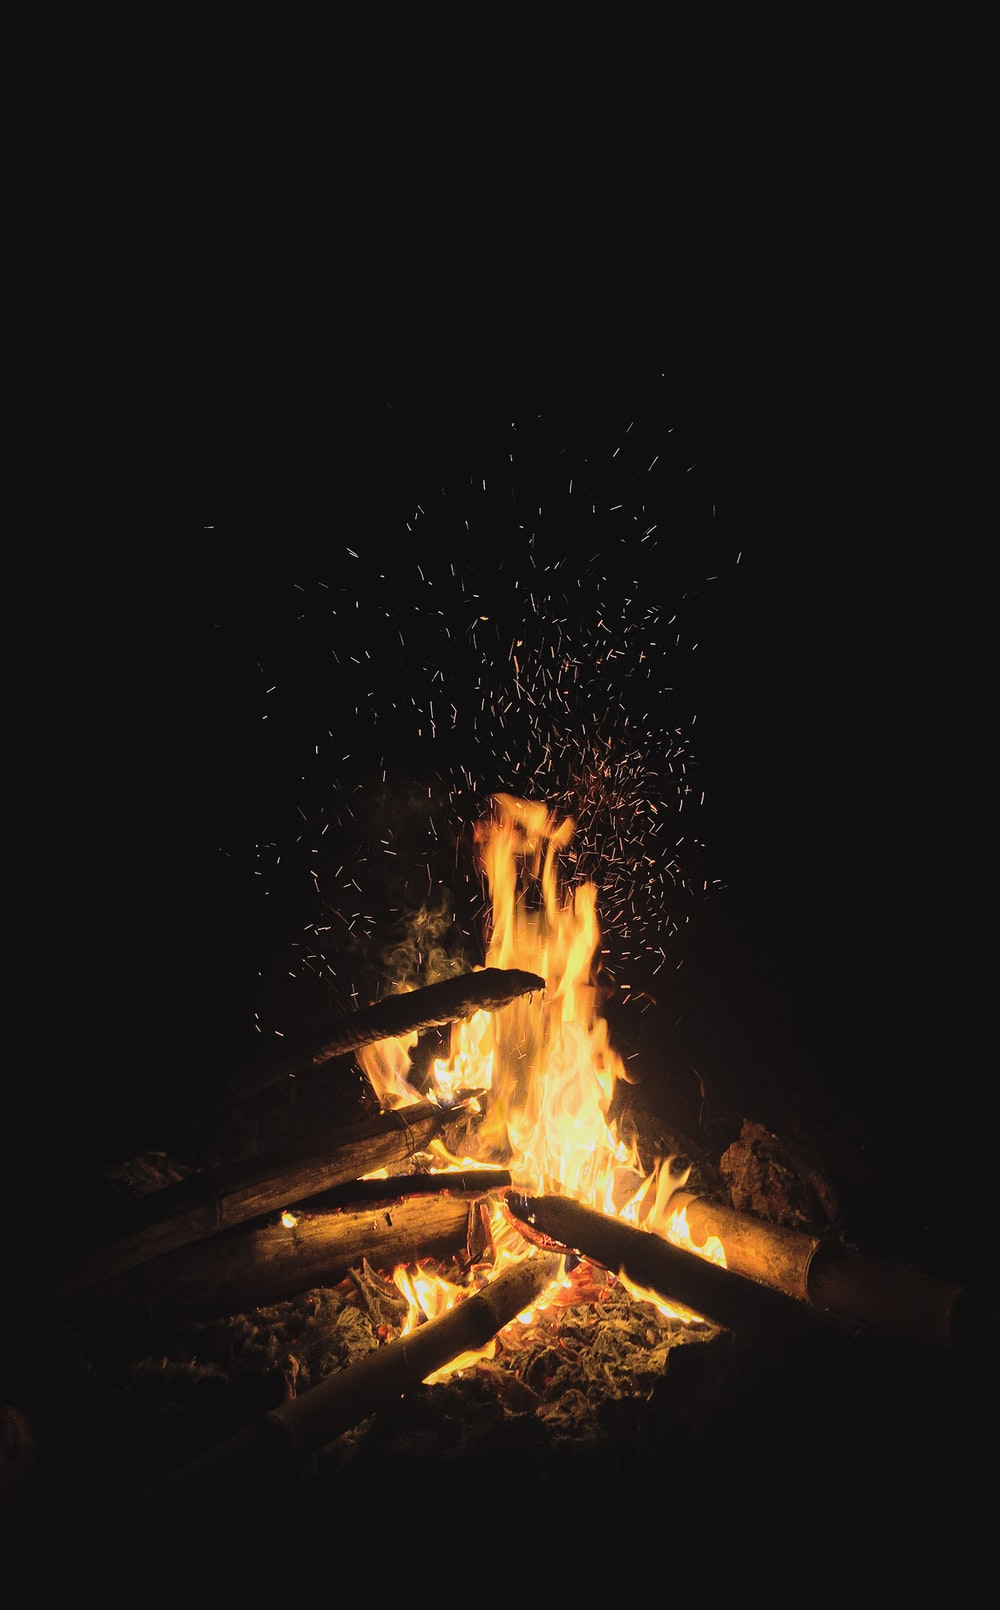 fire in the middle of fire